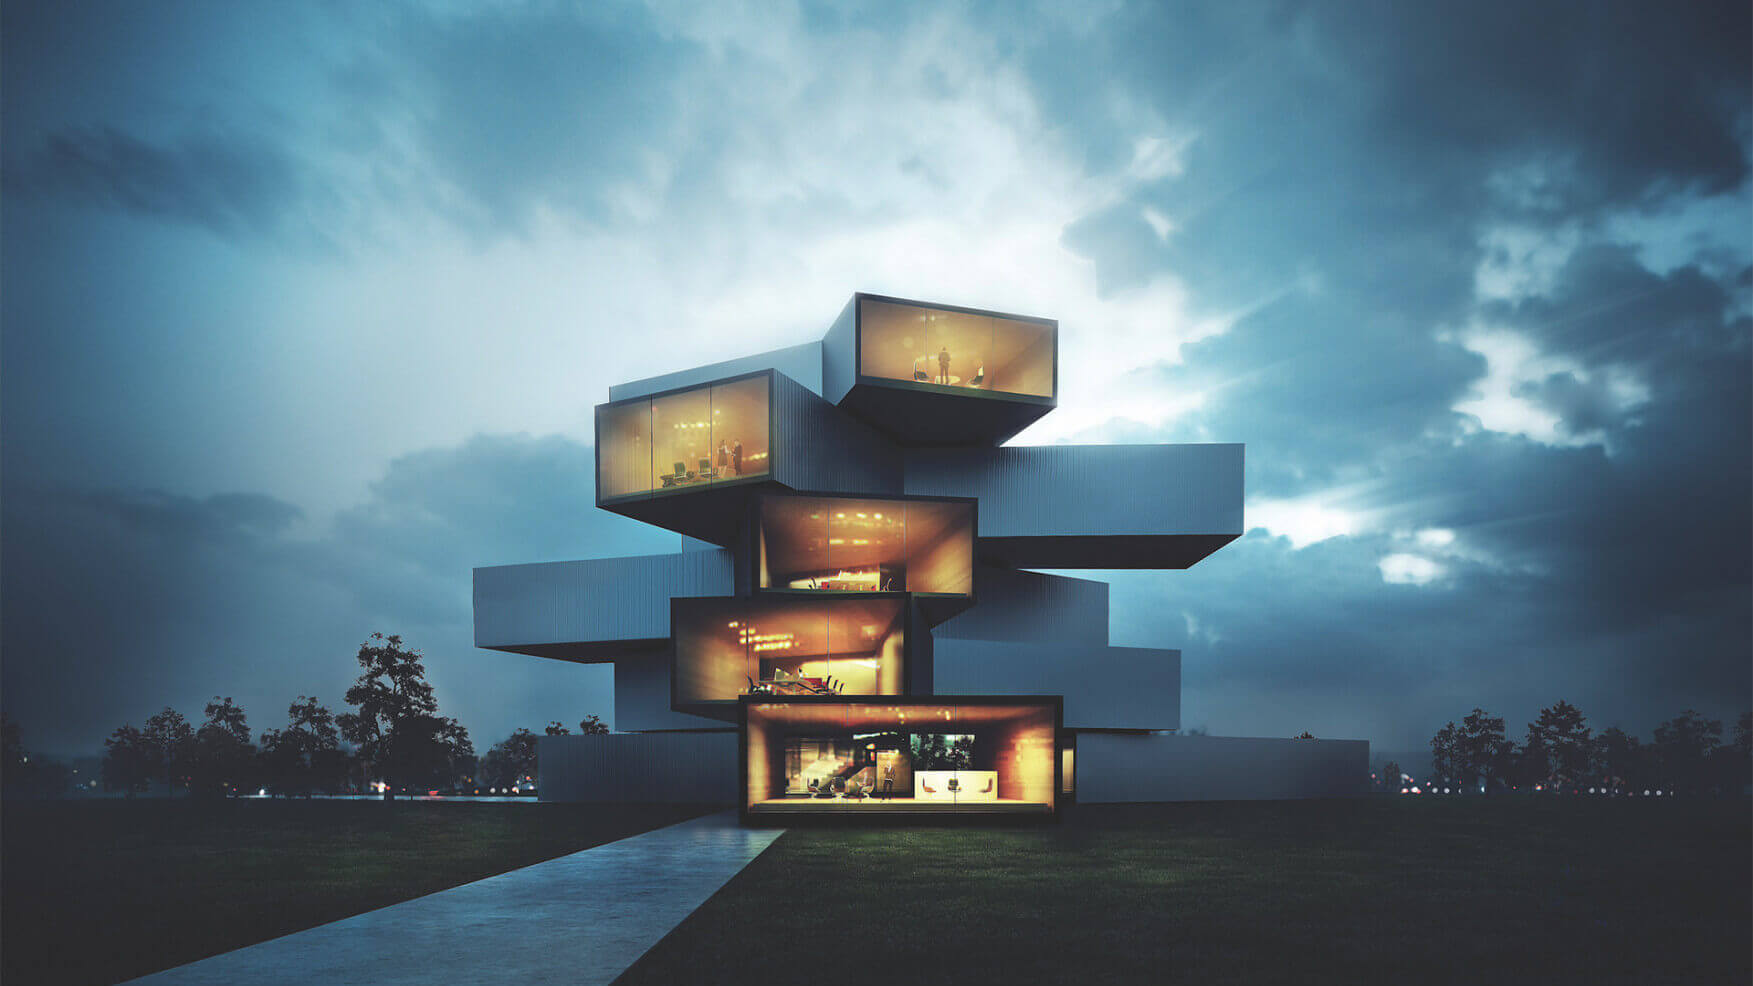 2020 3ds Max Free Download: Is There a Free Full Version? | All3DP